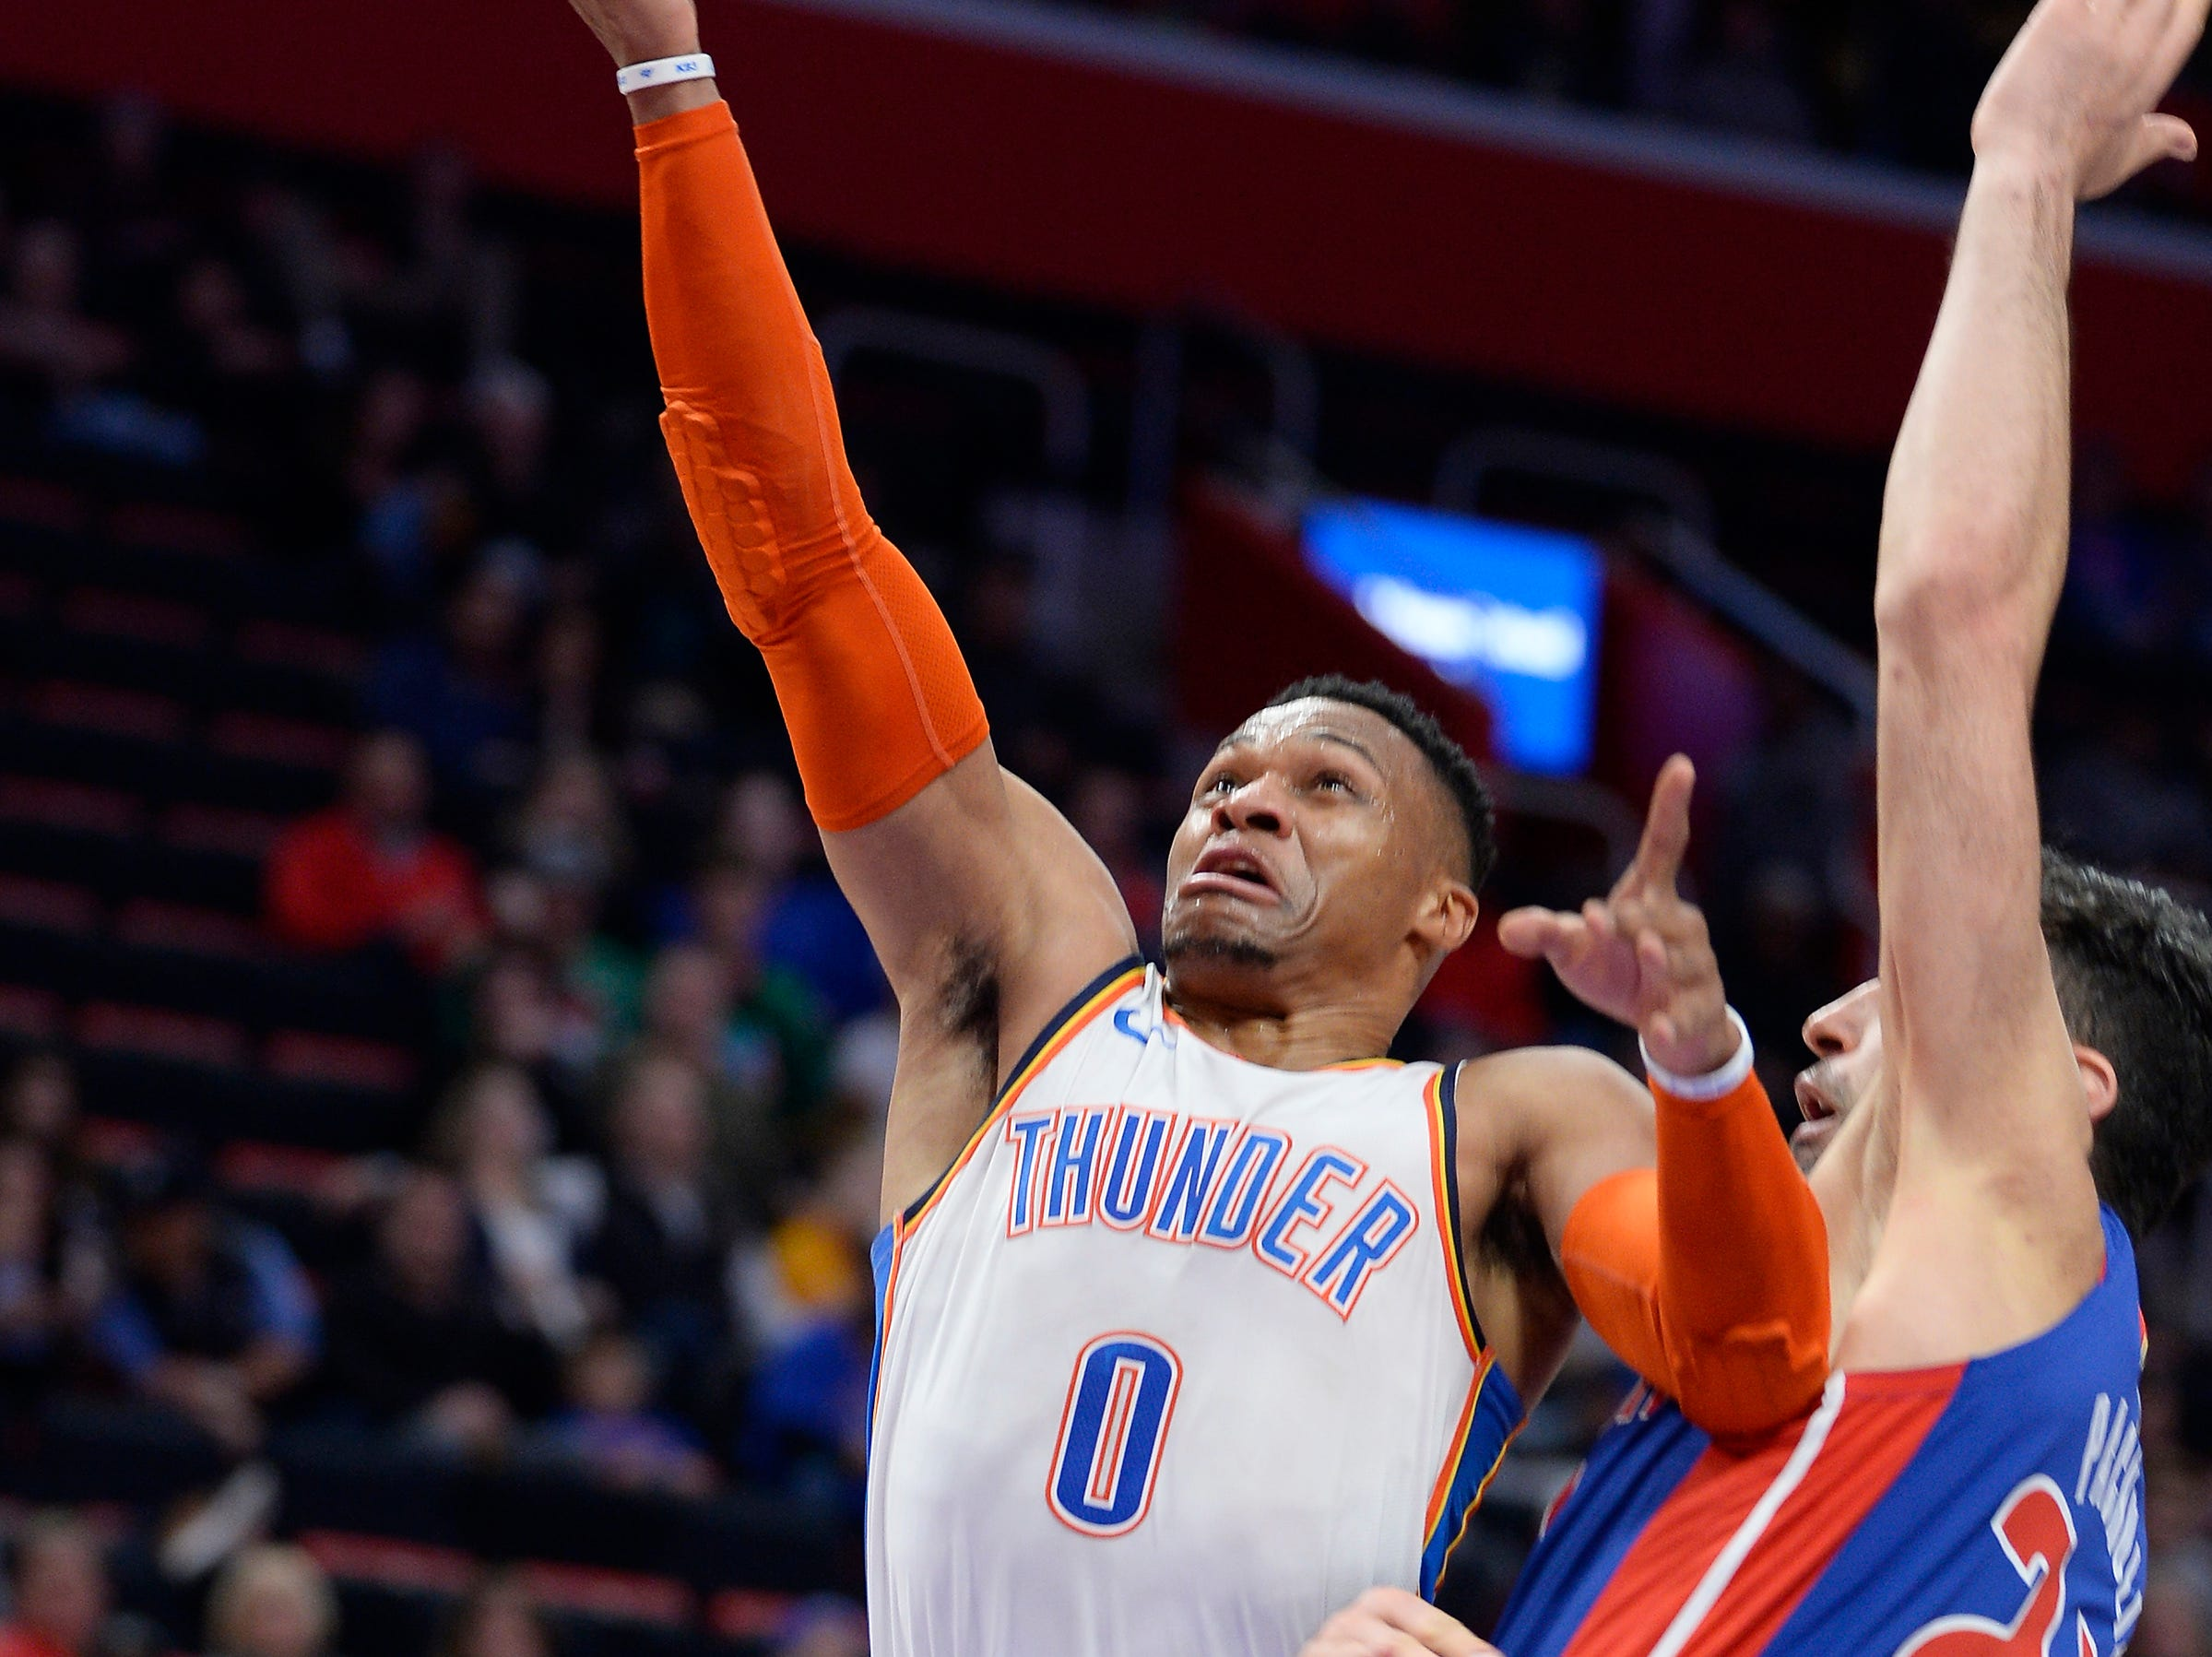 Thunder's Russell Westbrook scores over Pistons' ZaZa Pachulia in the third quarter.